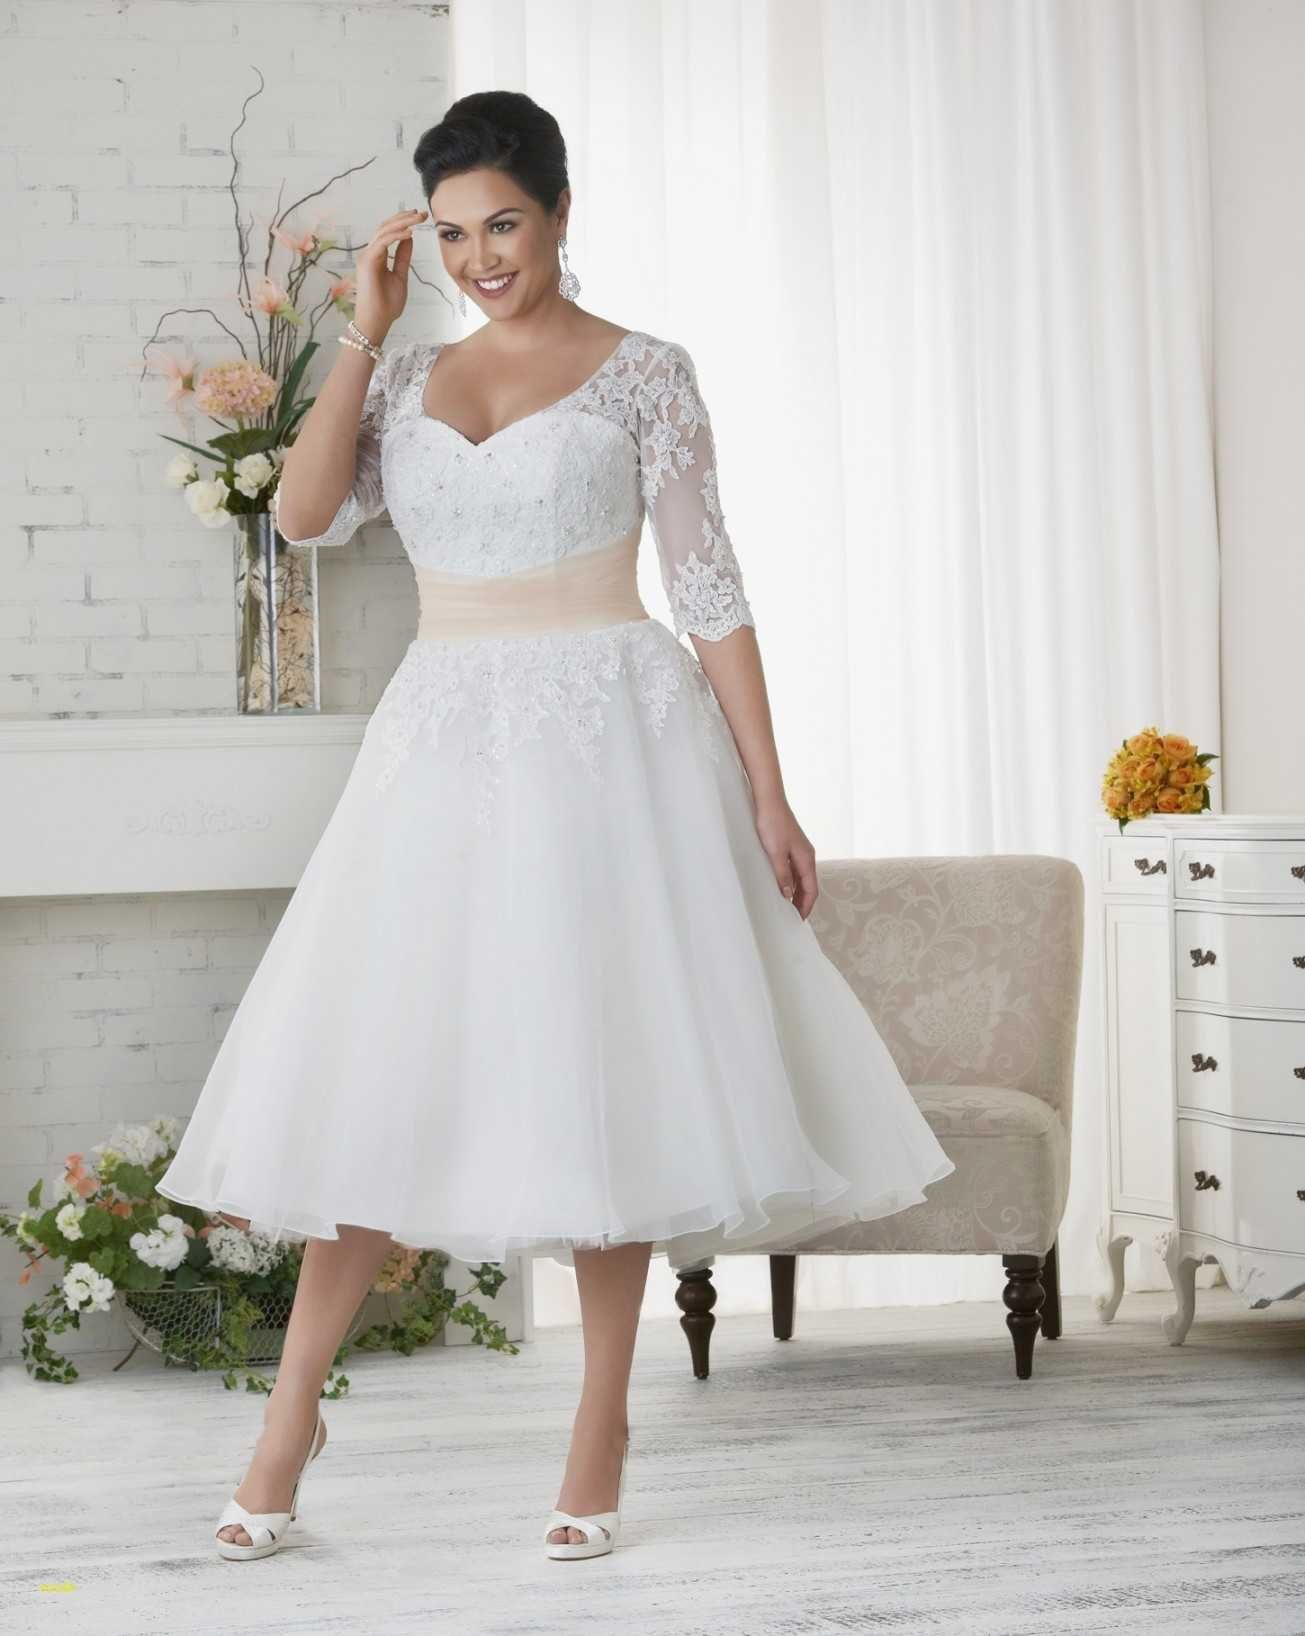 Wedding dress for older bride  Image result for wedding dresses for older larger brides  Cena